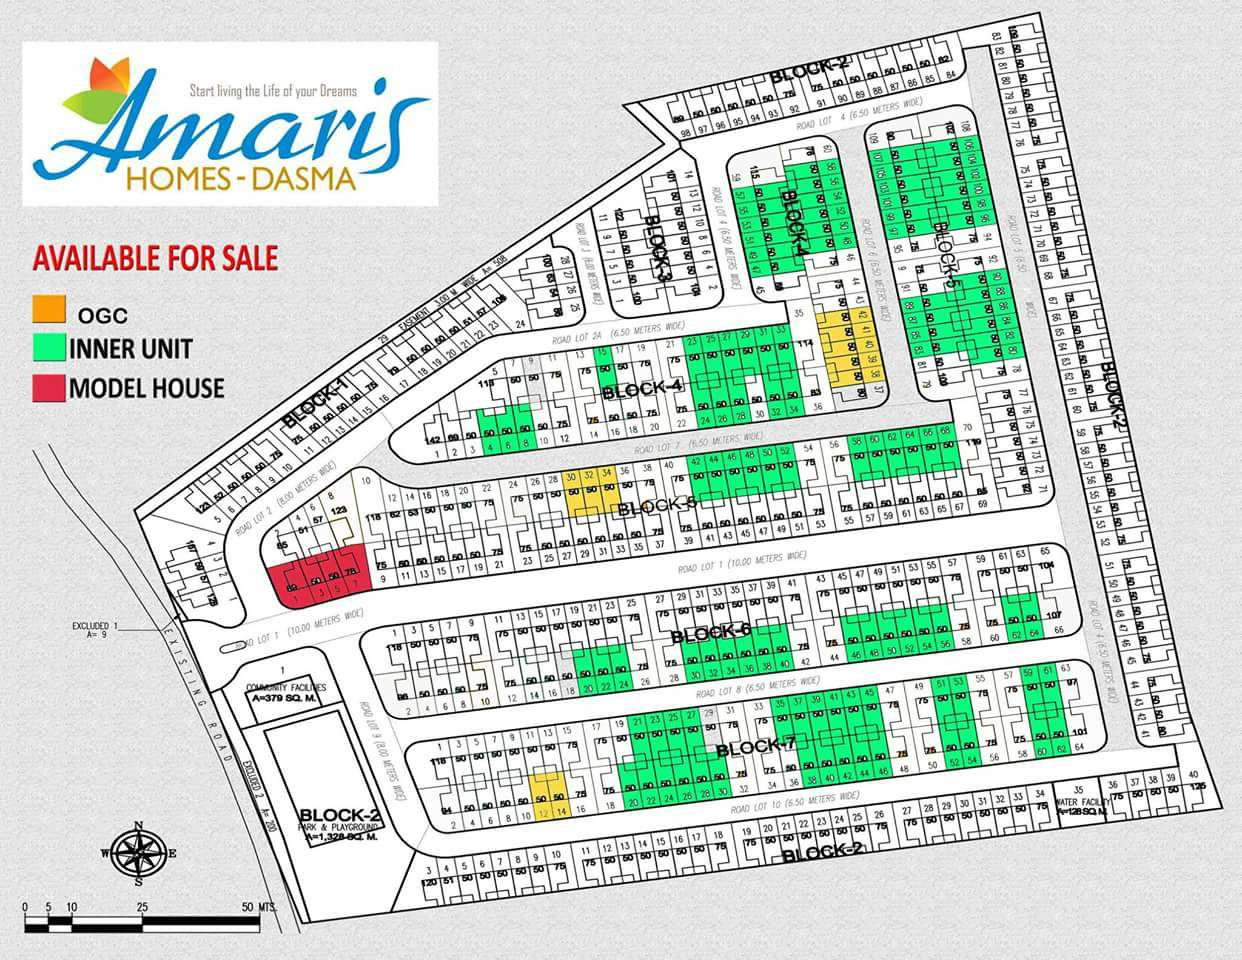 House and Lot in Dasmariñas Amaris Homes